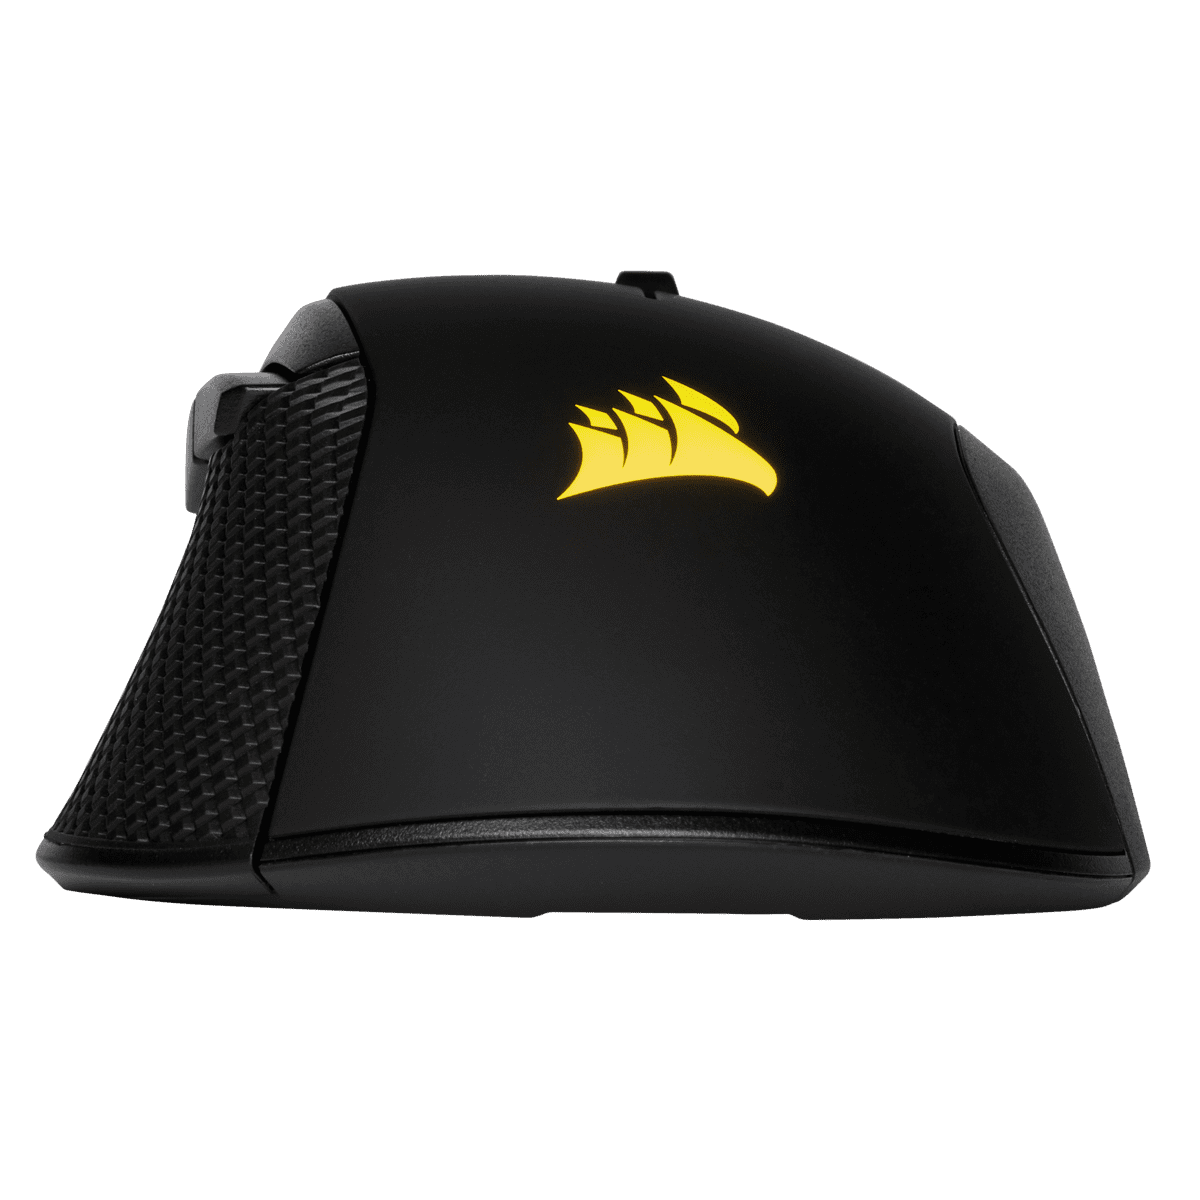 Mouse Gamer Corsair IronClaw RGB 18000DPI Preto CH-9307011-NA